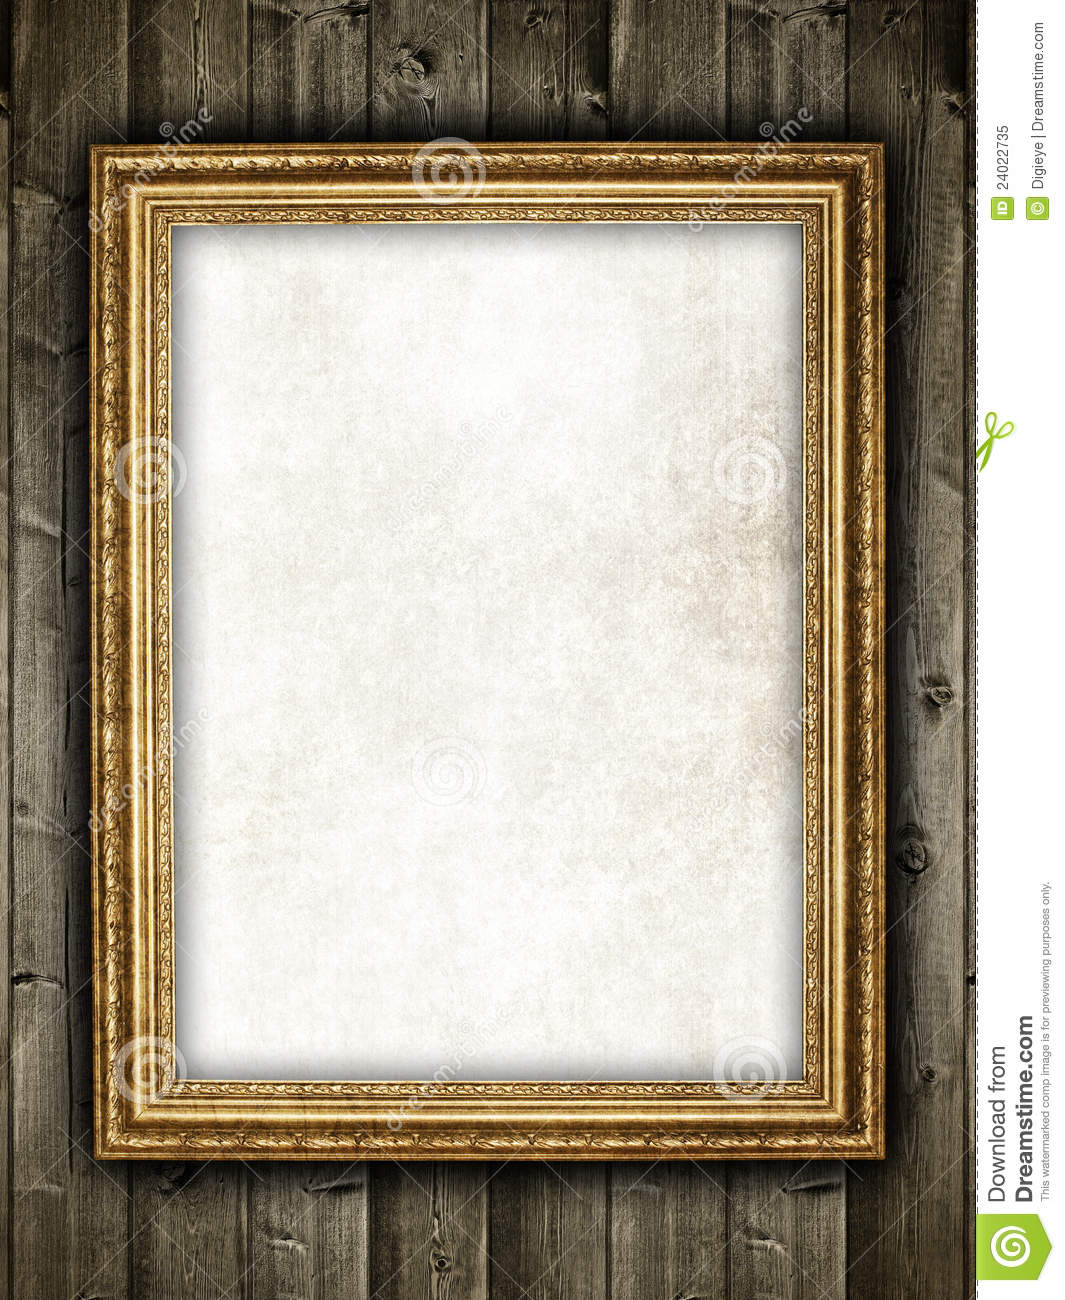 template design frame on wood background royalty free stock photo